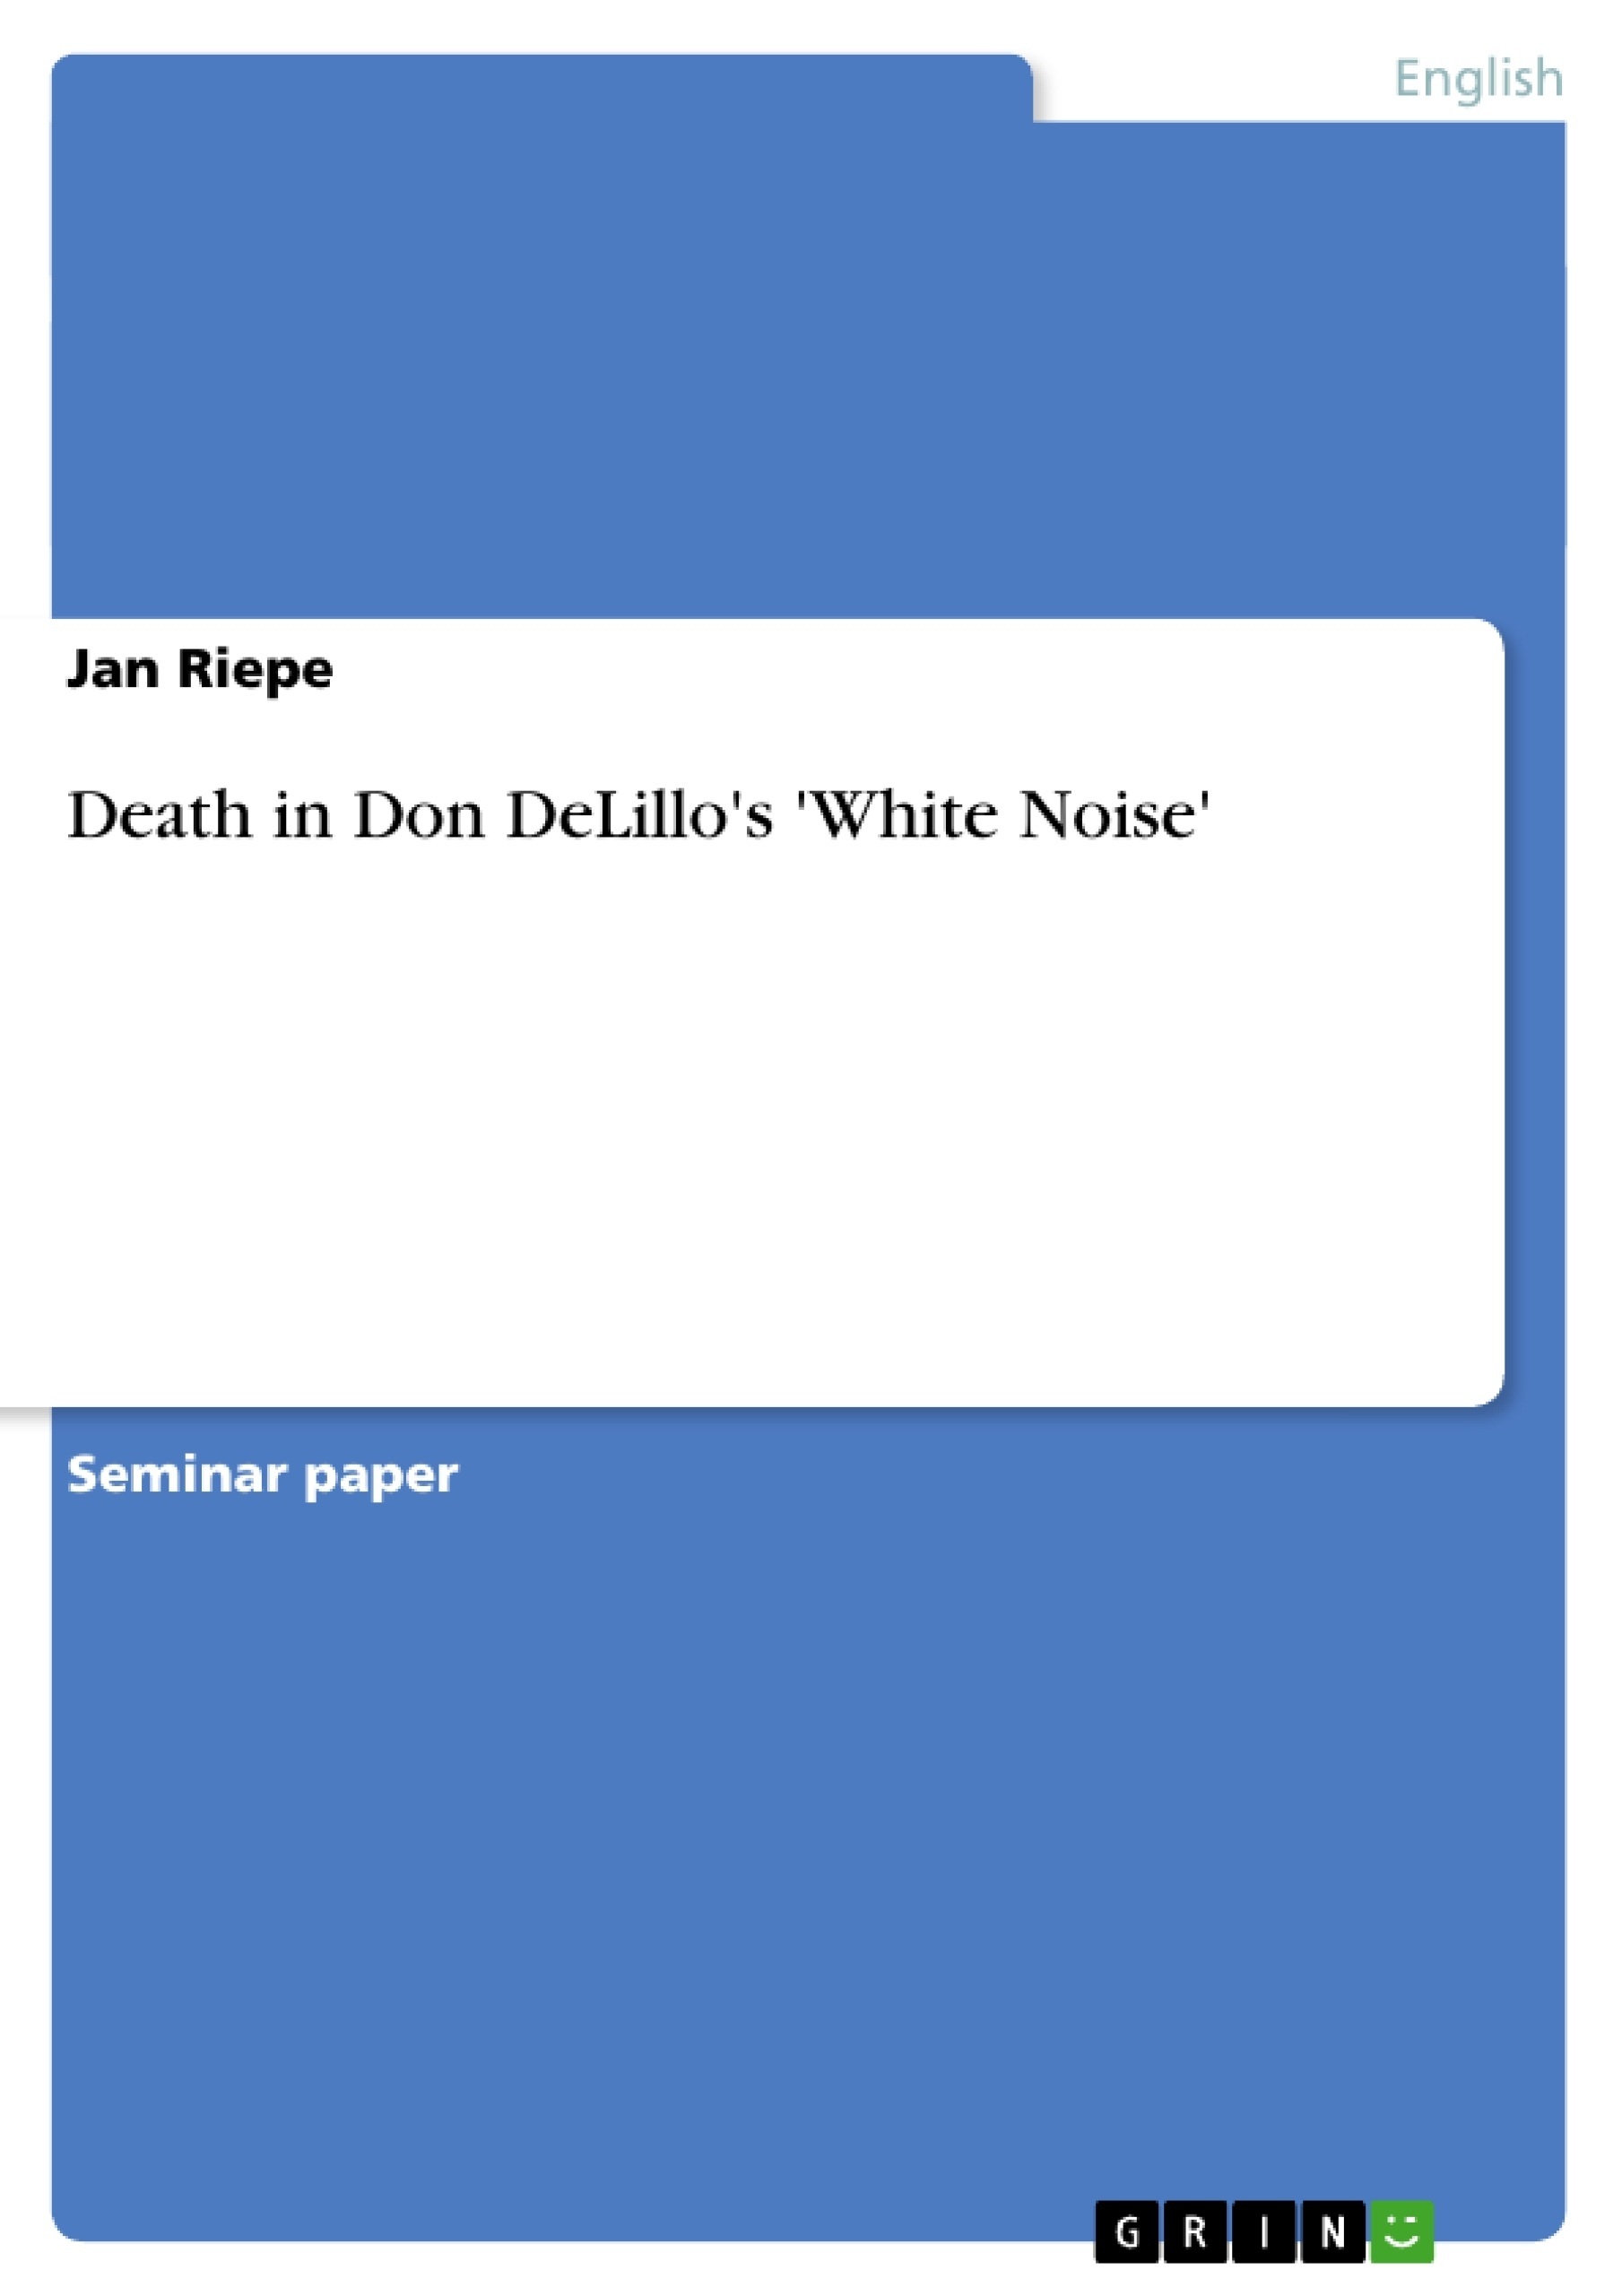 death in don delillo s white noise publish your master s  upload your own papers earn money and win an iphone x